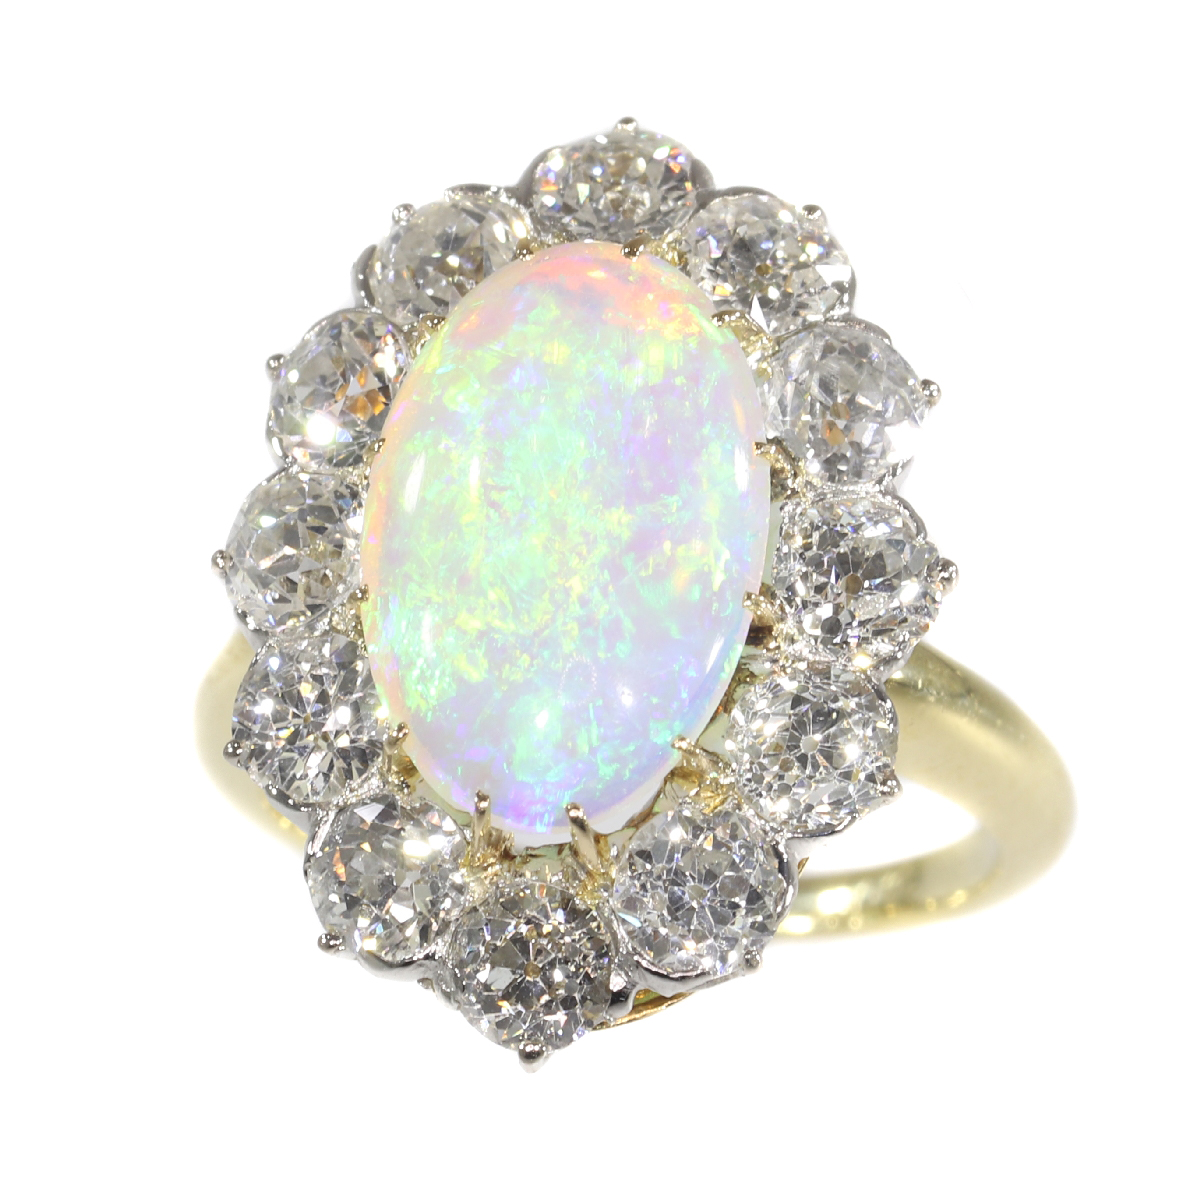 Antique Belle Epoque opal and diamonds ring can be changed into a pendant